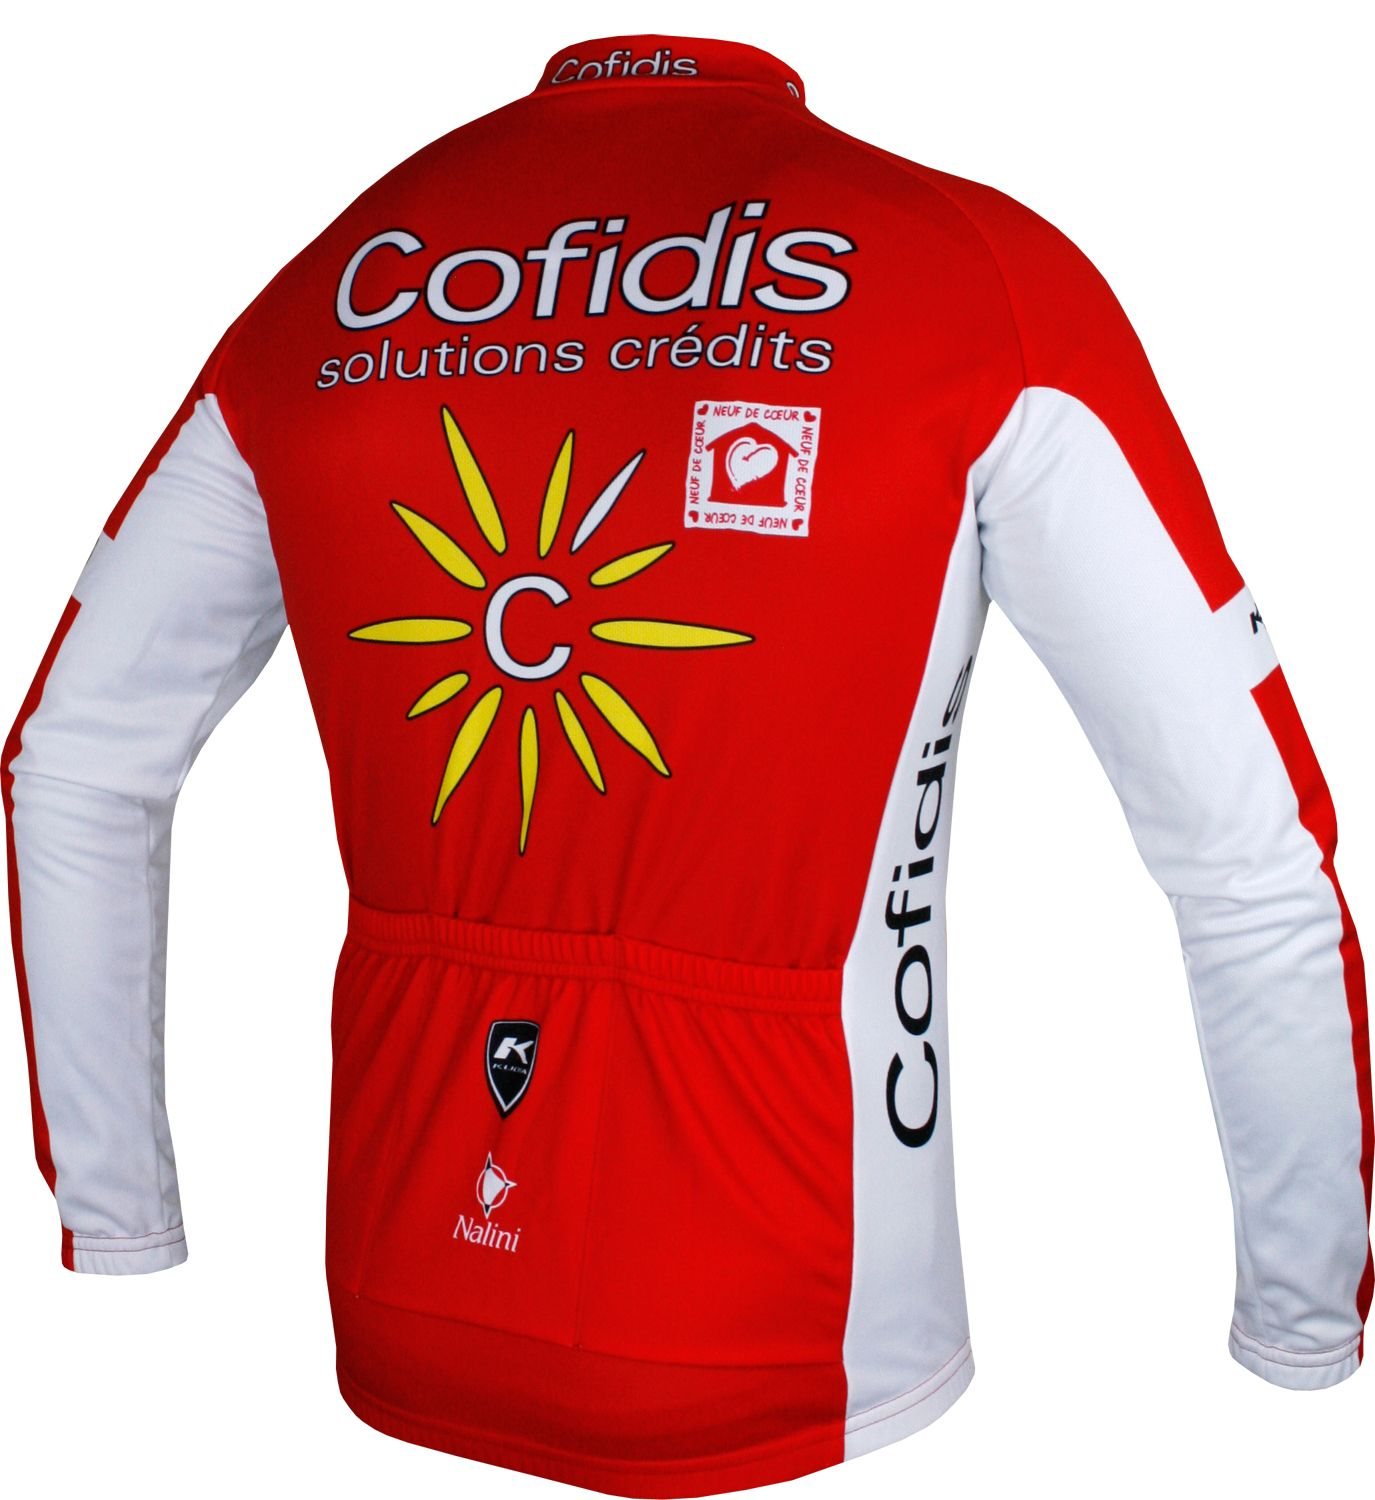 COFIDIS 2018 long sleeve cycling jersey - Nalini professional cycling team.  Next f1a53e2dd